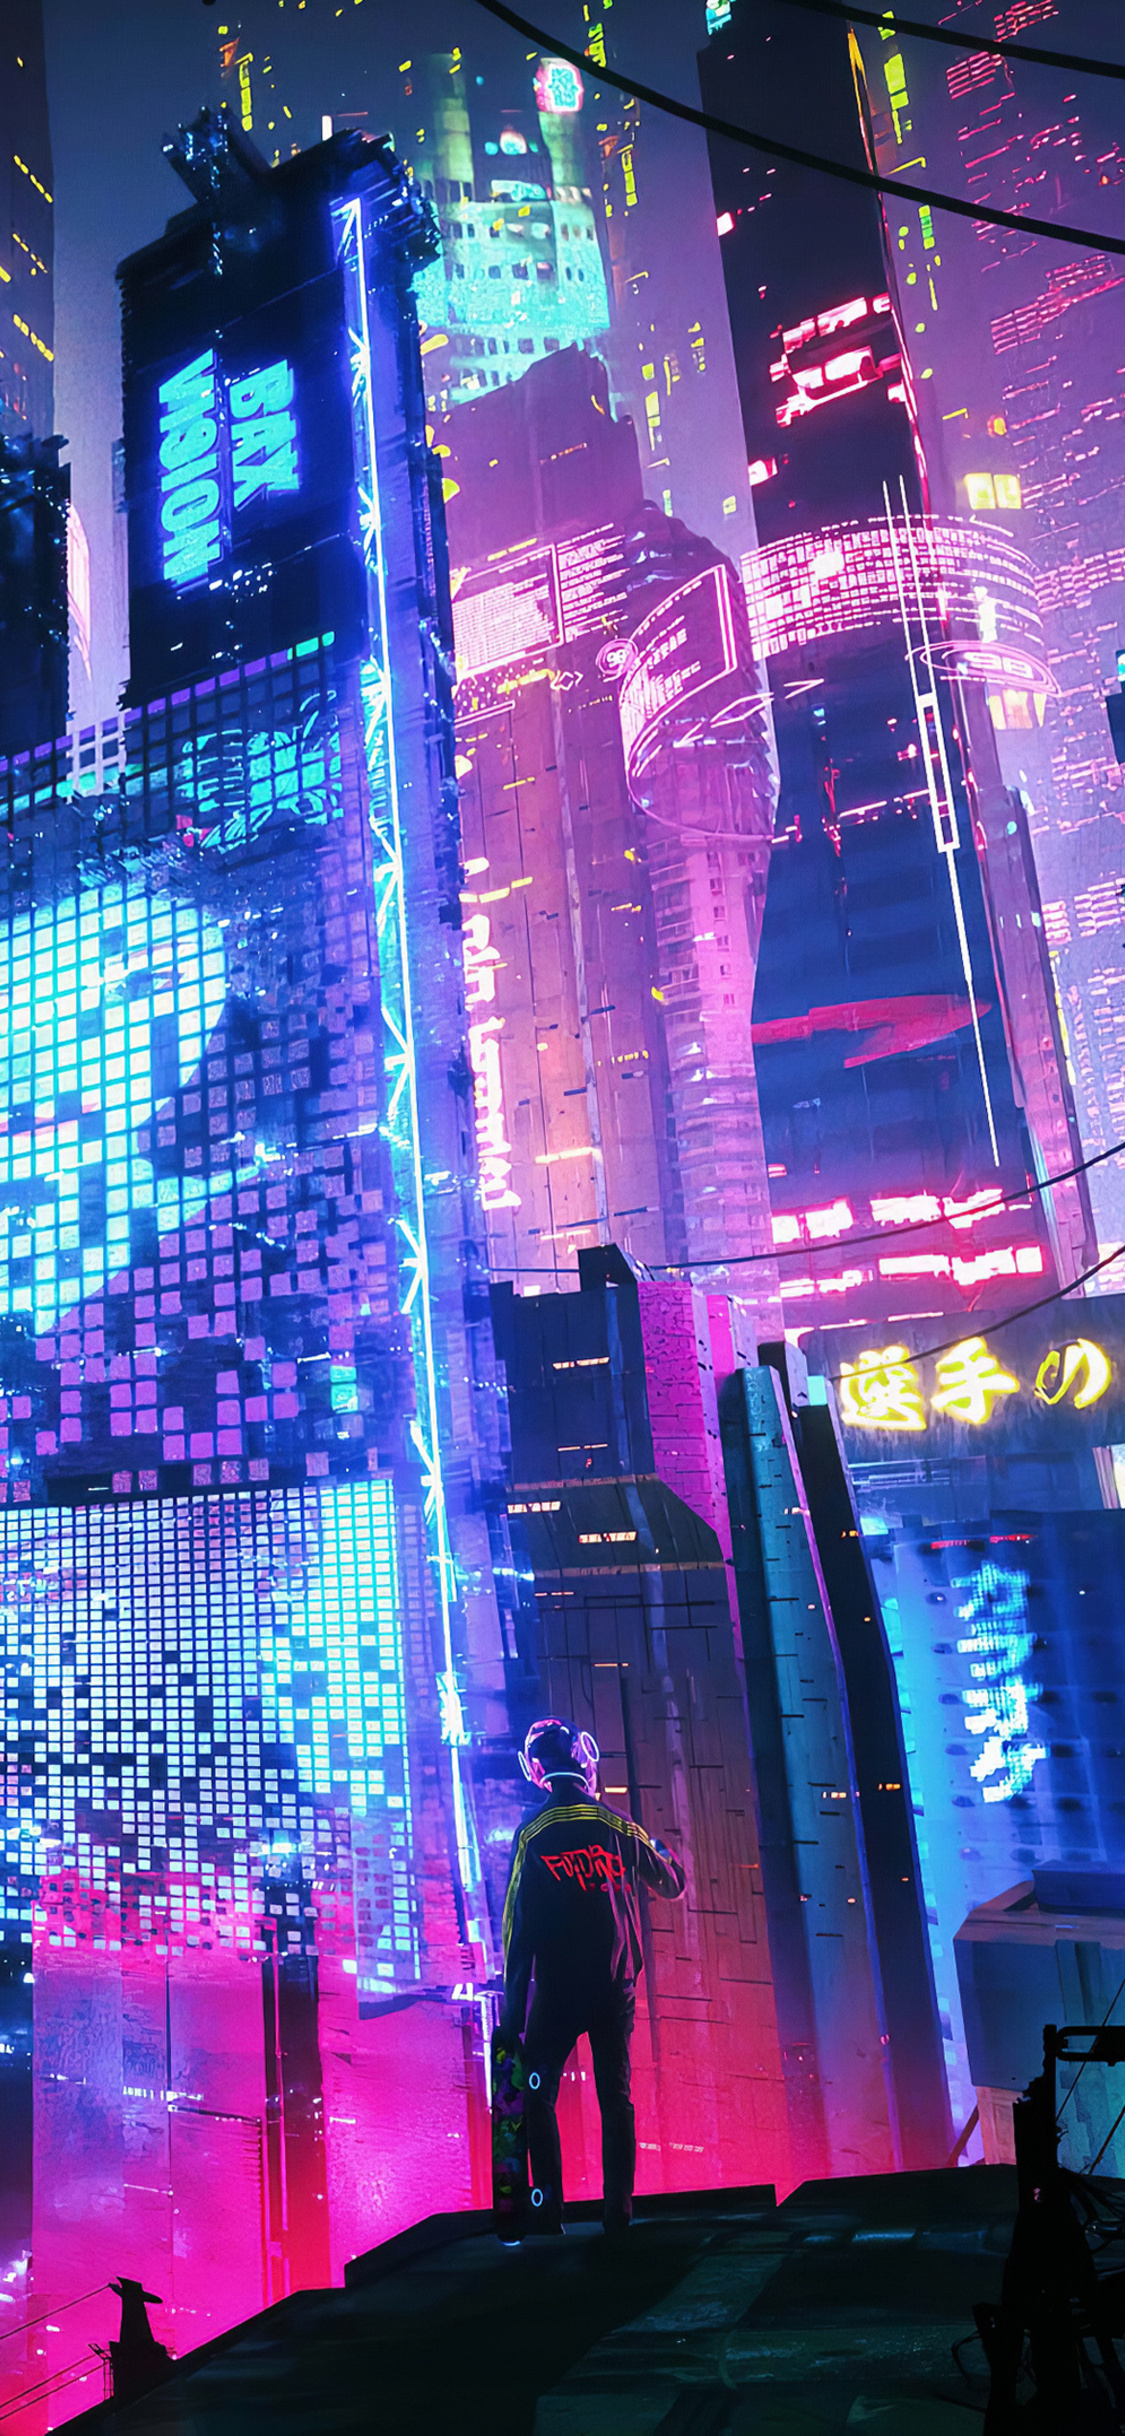 1125x2436 Colorful Neon City 4k Iphone